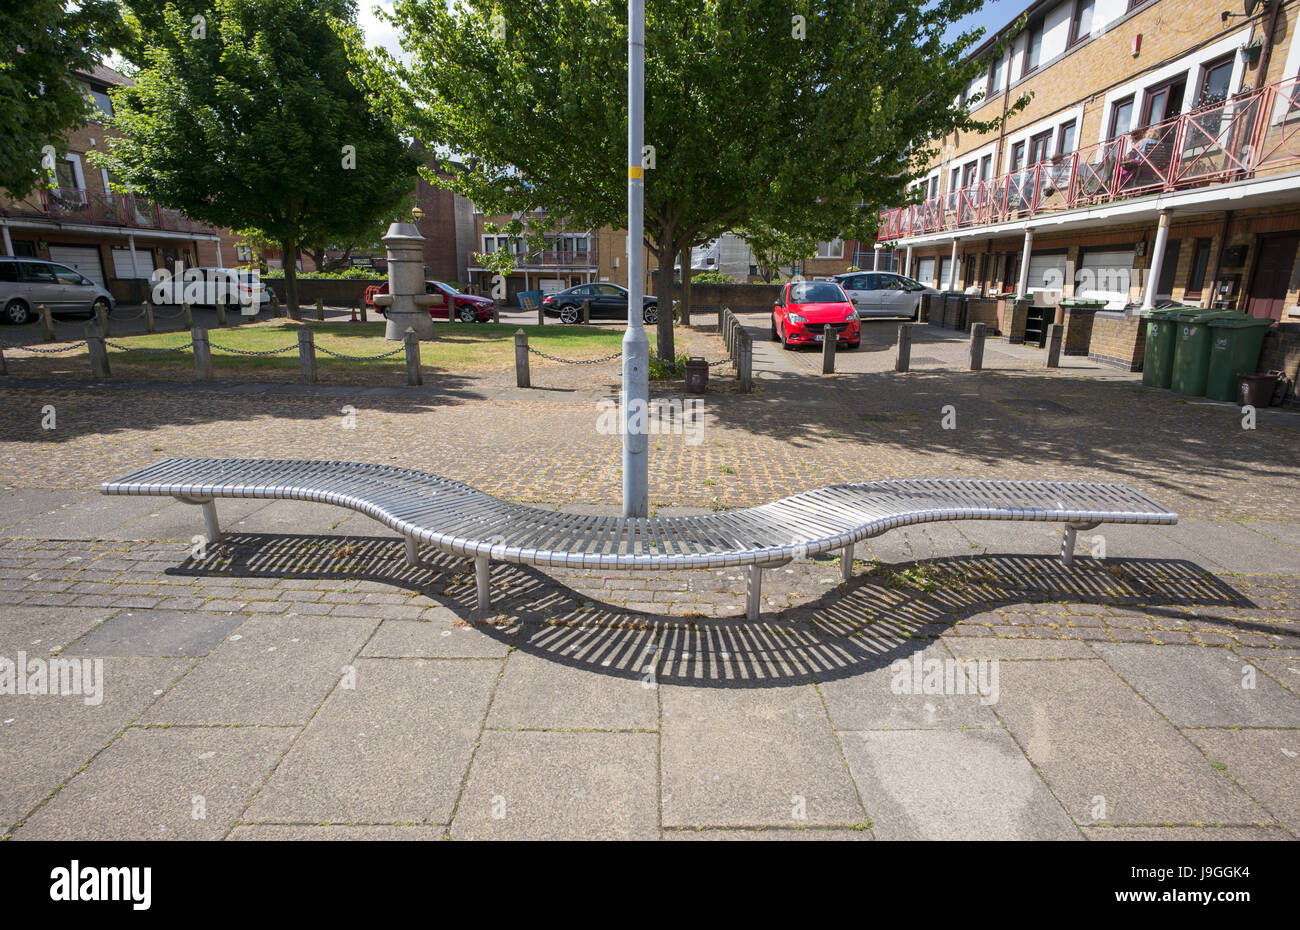 Curved stainless steel bench at base of lamp post near housing, Rotherhithe, London, UK Stock Photo